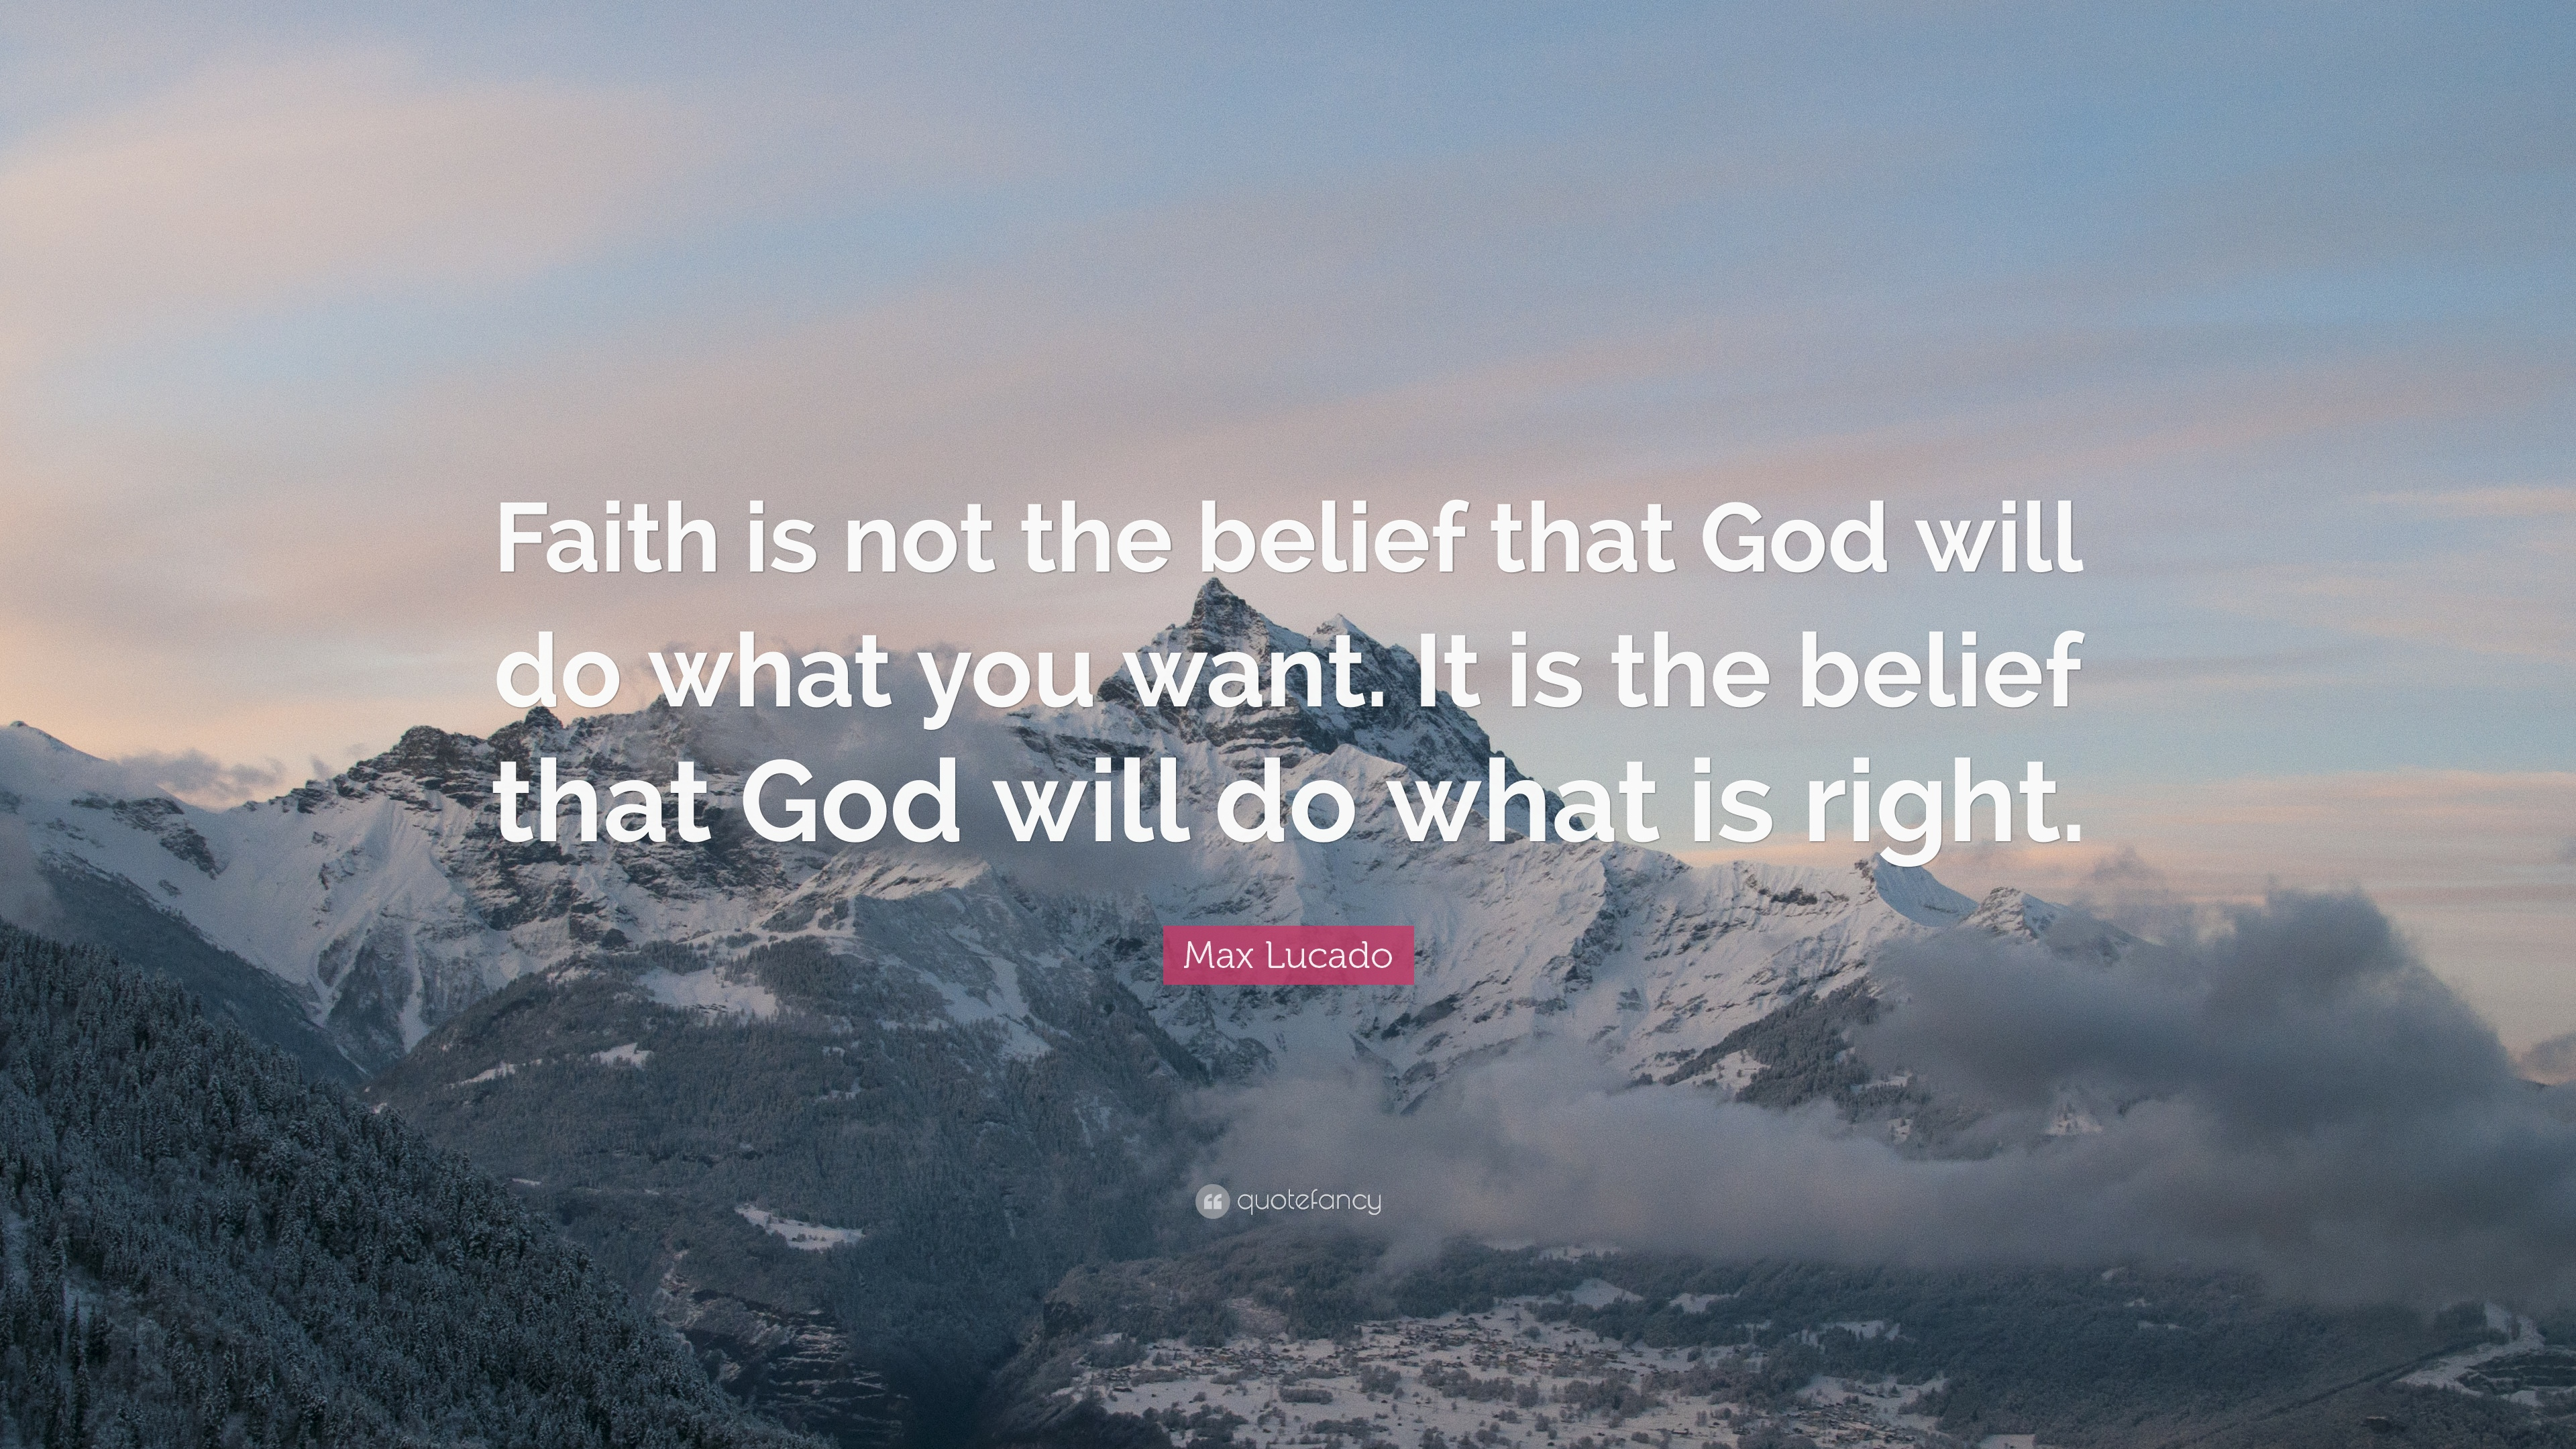 max lucado quote faith is not the belief that god will